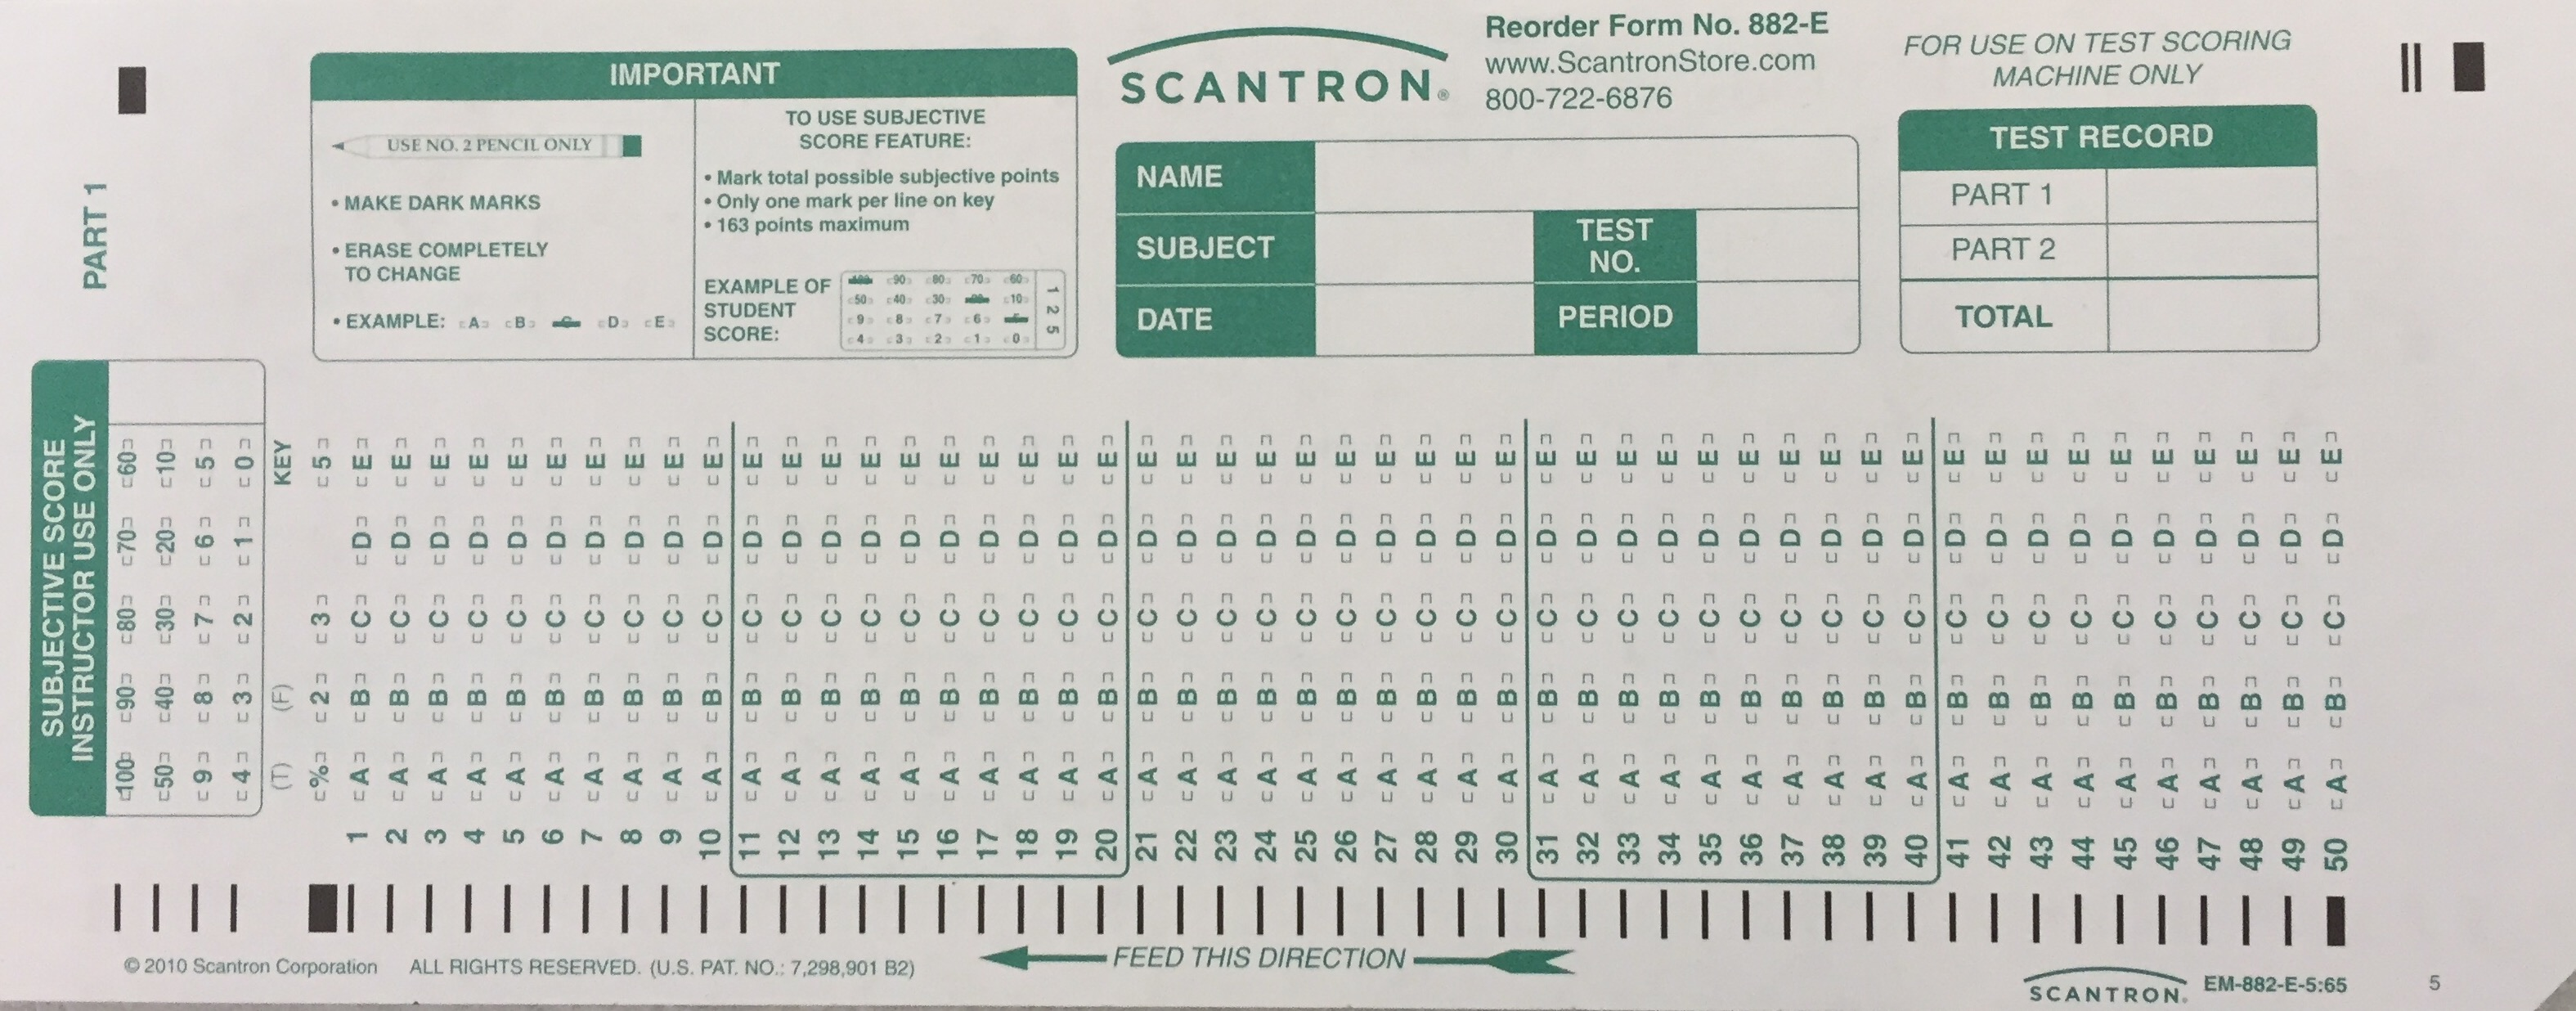 Scantron Form No. 882 Es